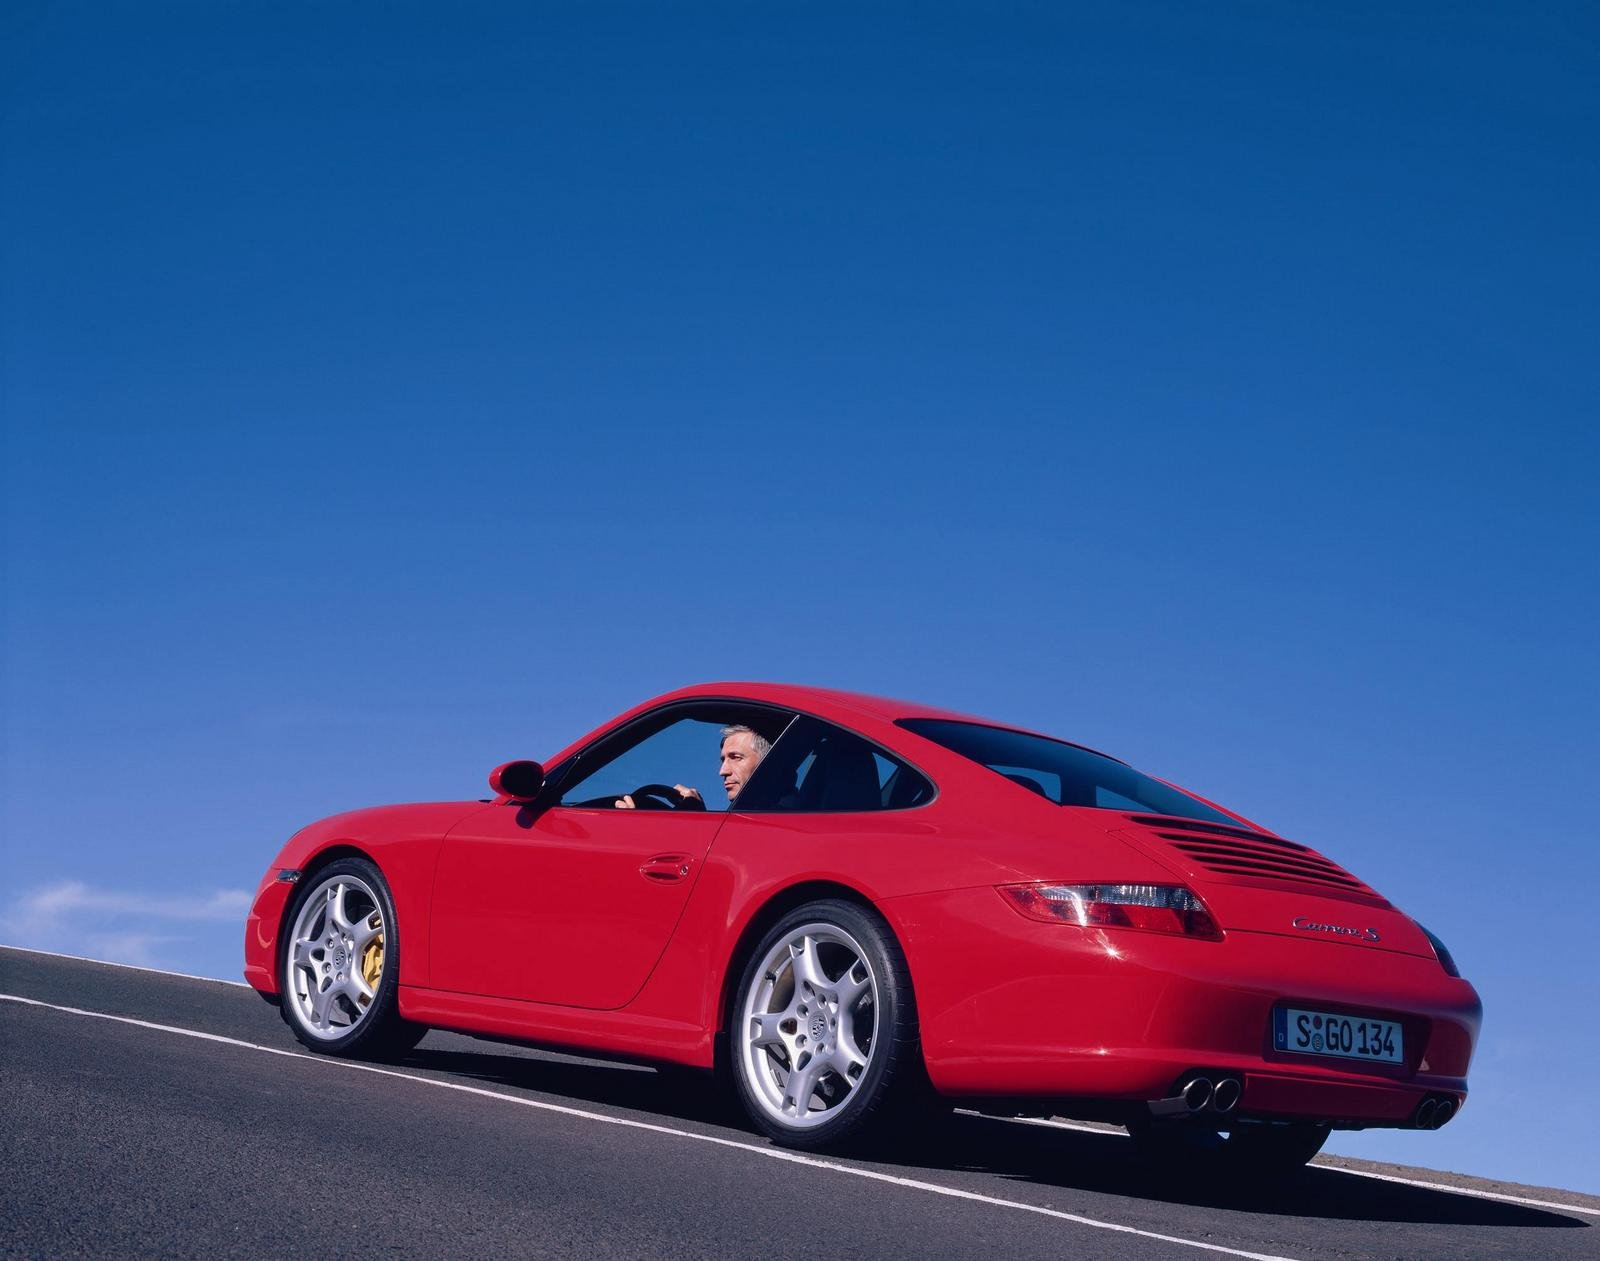 2005 porsche 911 carrera s 997 picture 70887 car. Black Bedroom Furniture Sets. Home Design Ideas